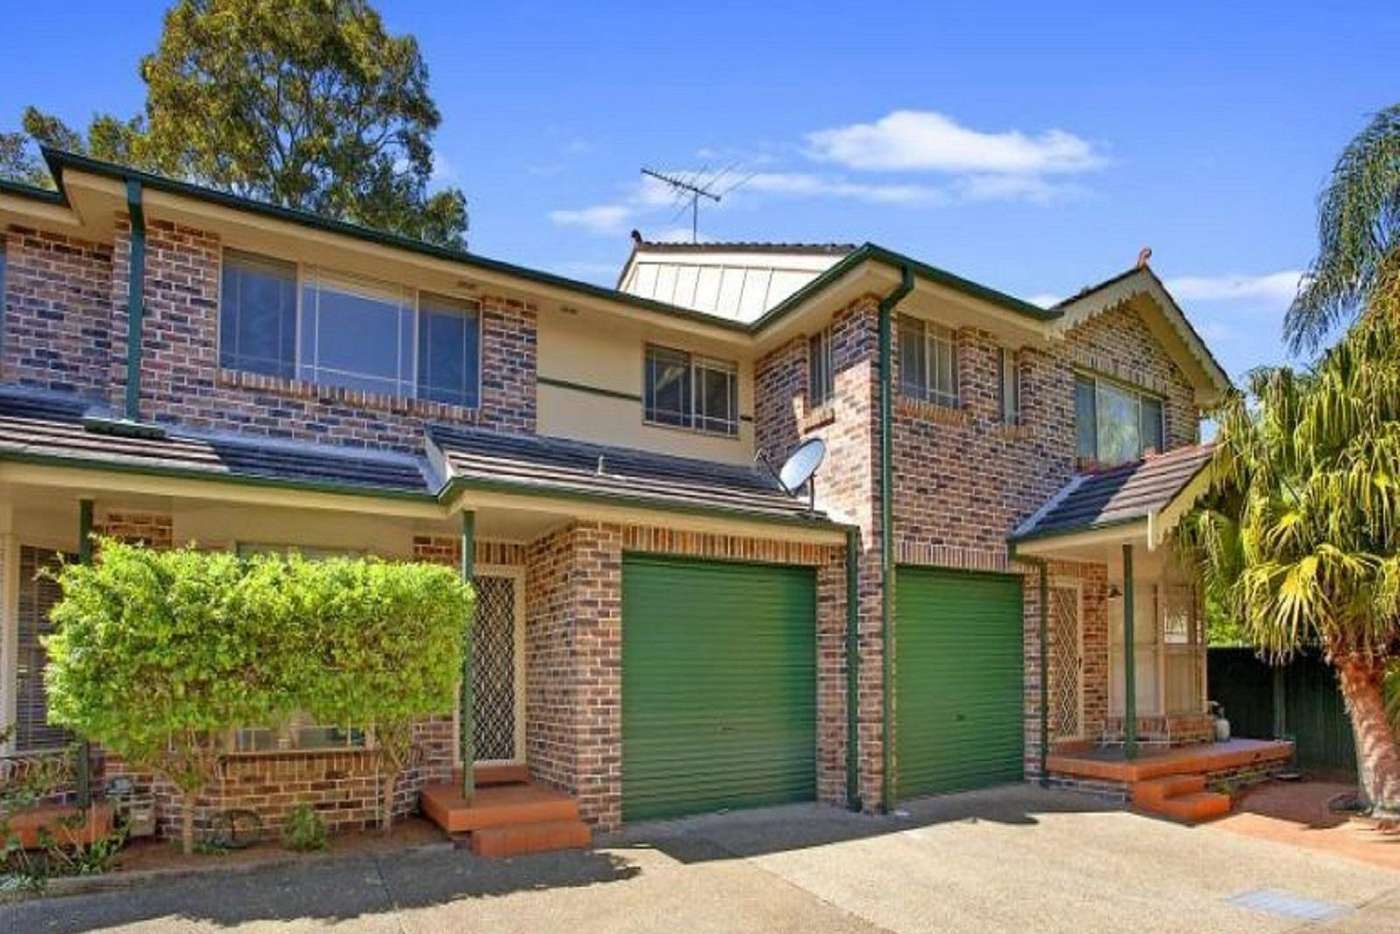 Main view of Homely apartment listing, 6/32 Vista Street, Caringbah NSW 2229